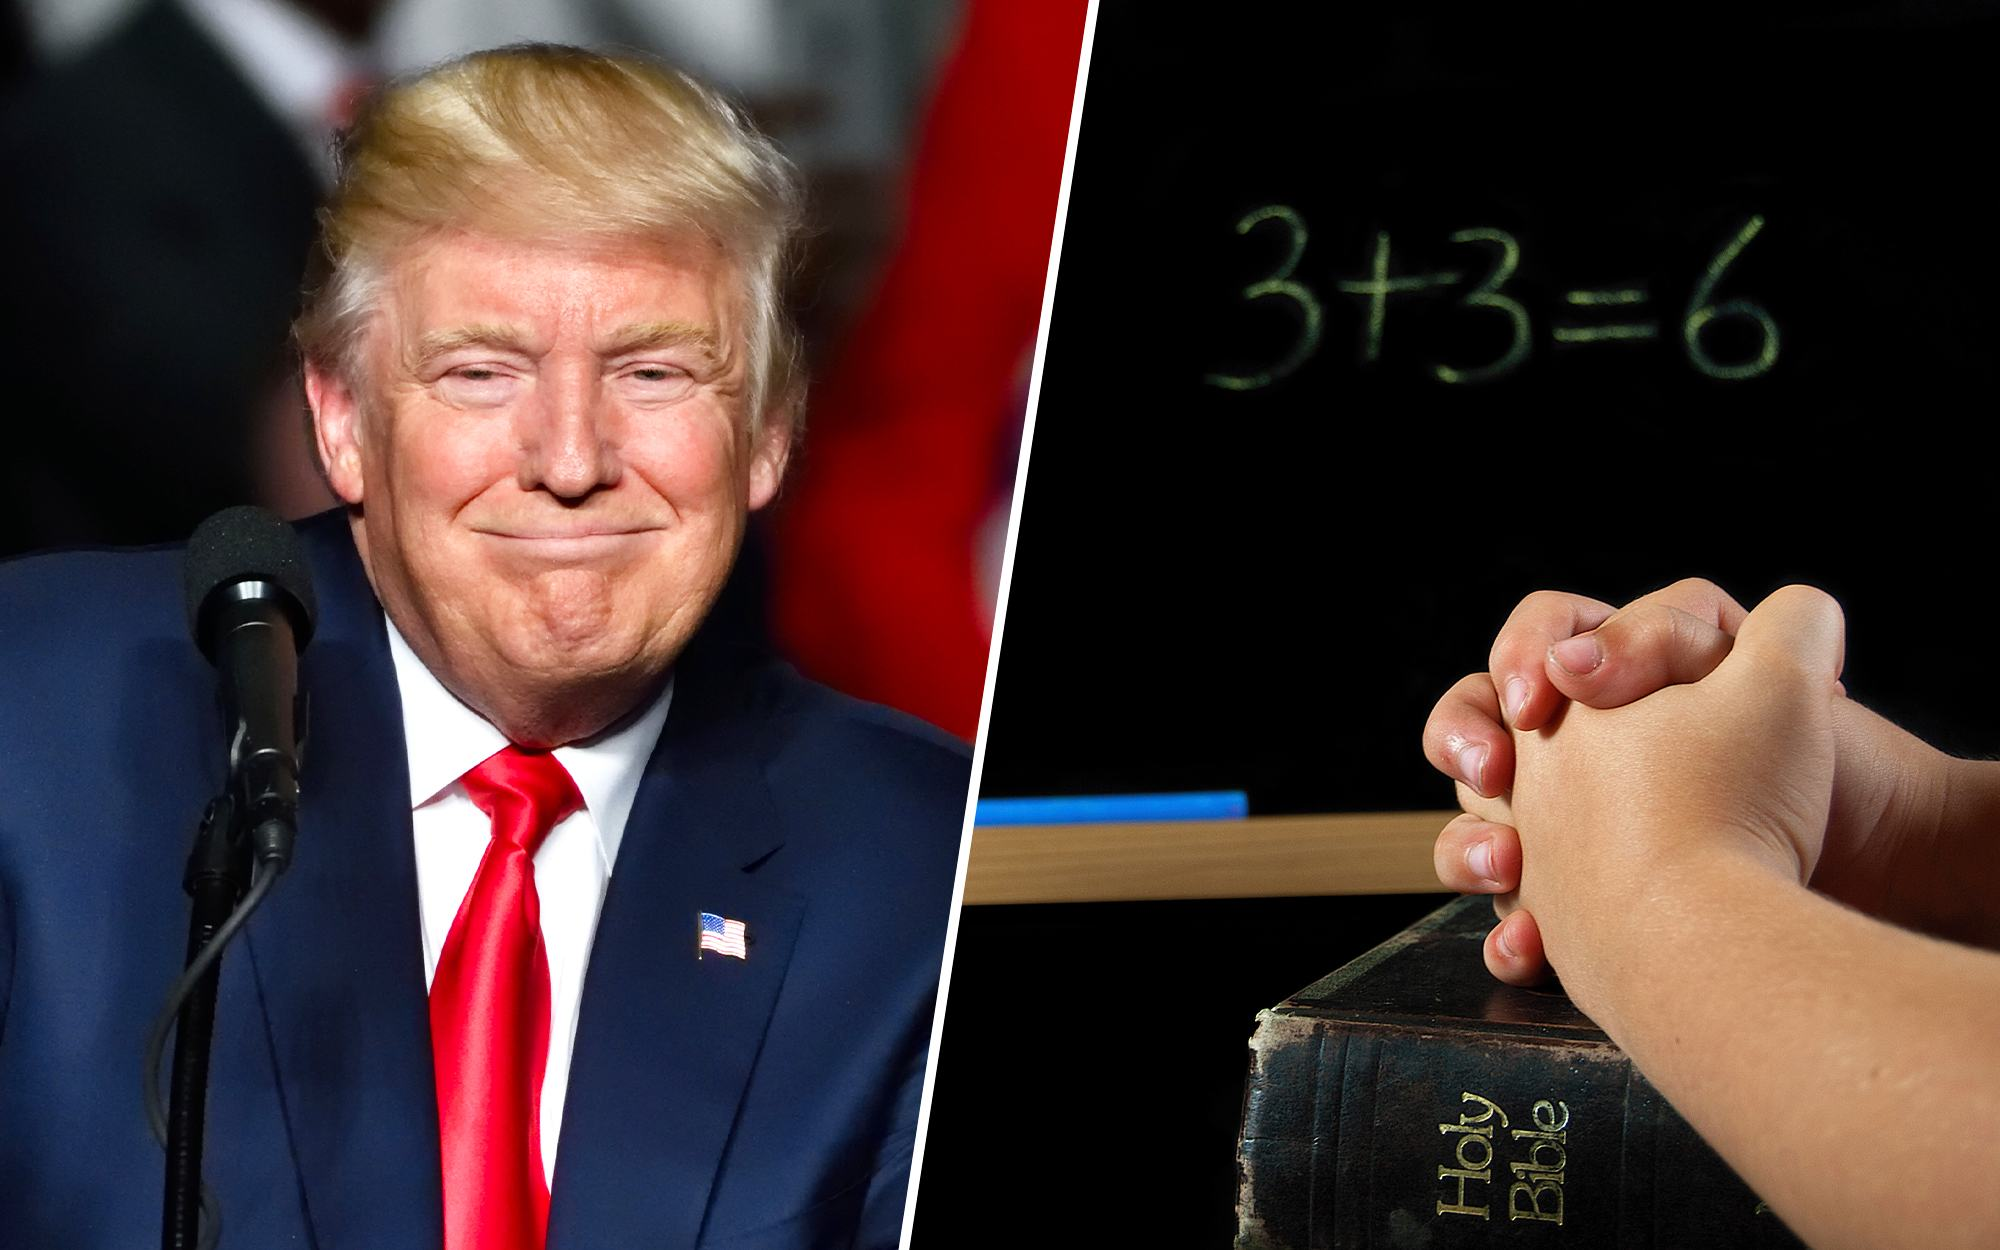 Trump Makes Aggressive Protections for Prayer in Public School